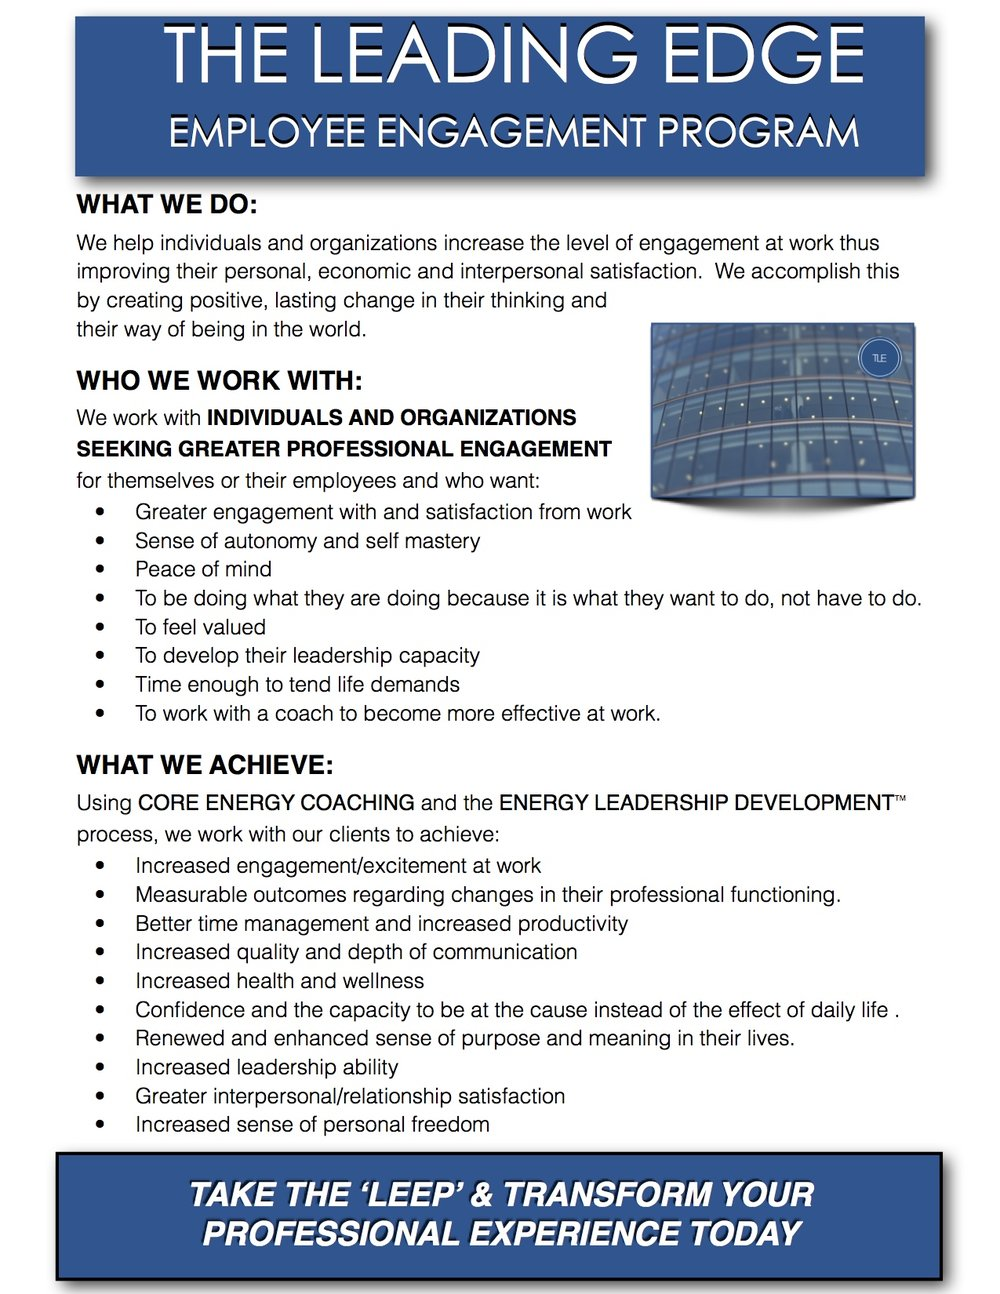 THE LEADING EDGE ENGAGEMENT FLYER copy1b copy.jpg